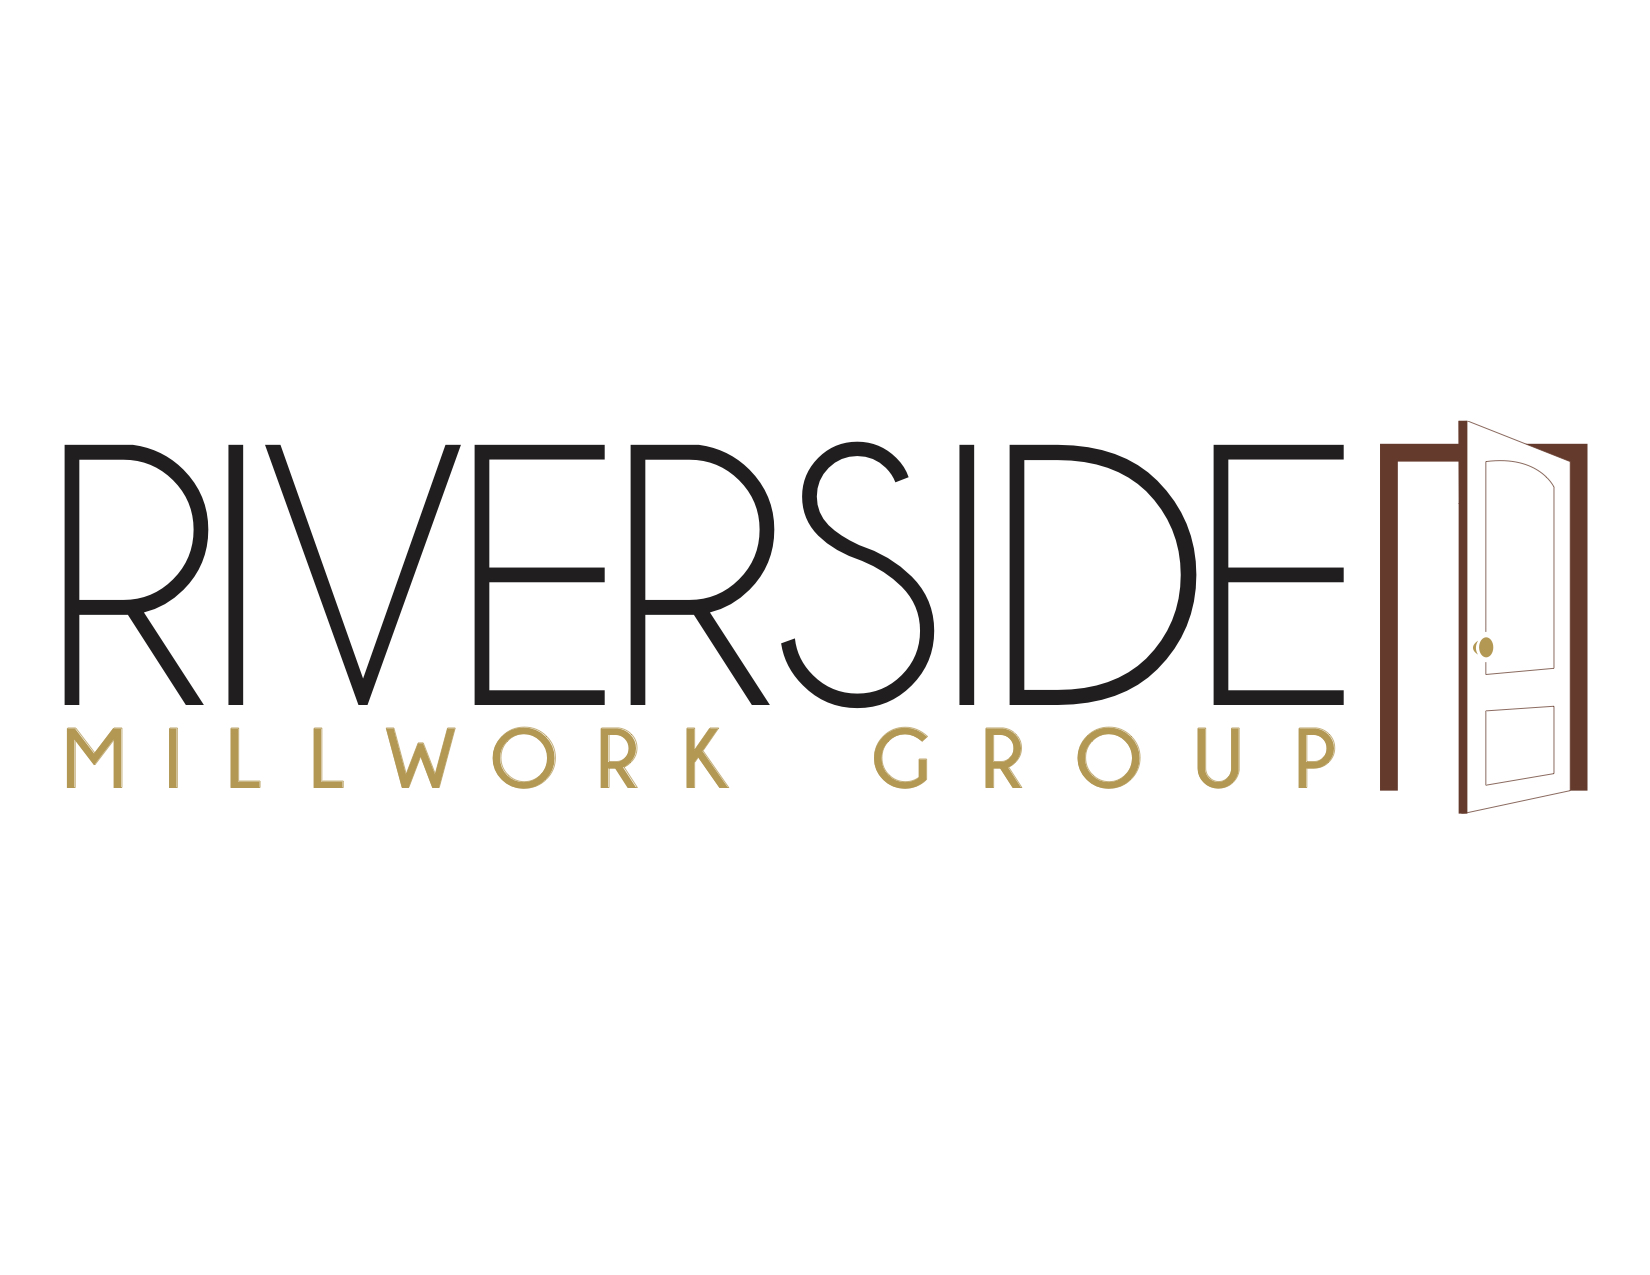 Logo: Riverside Millwork Group